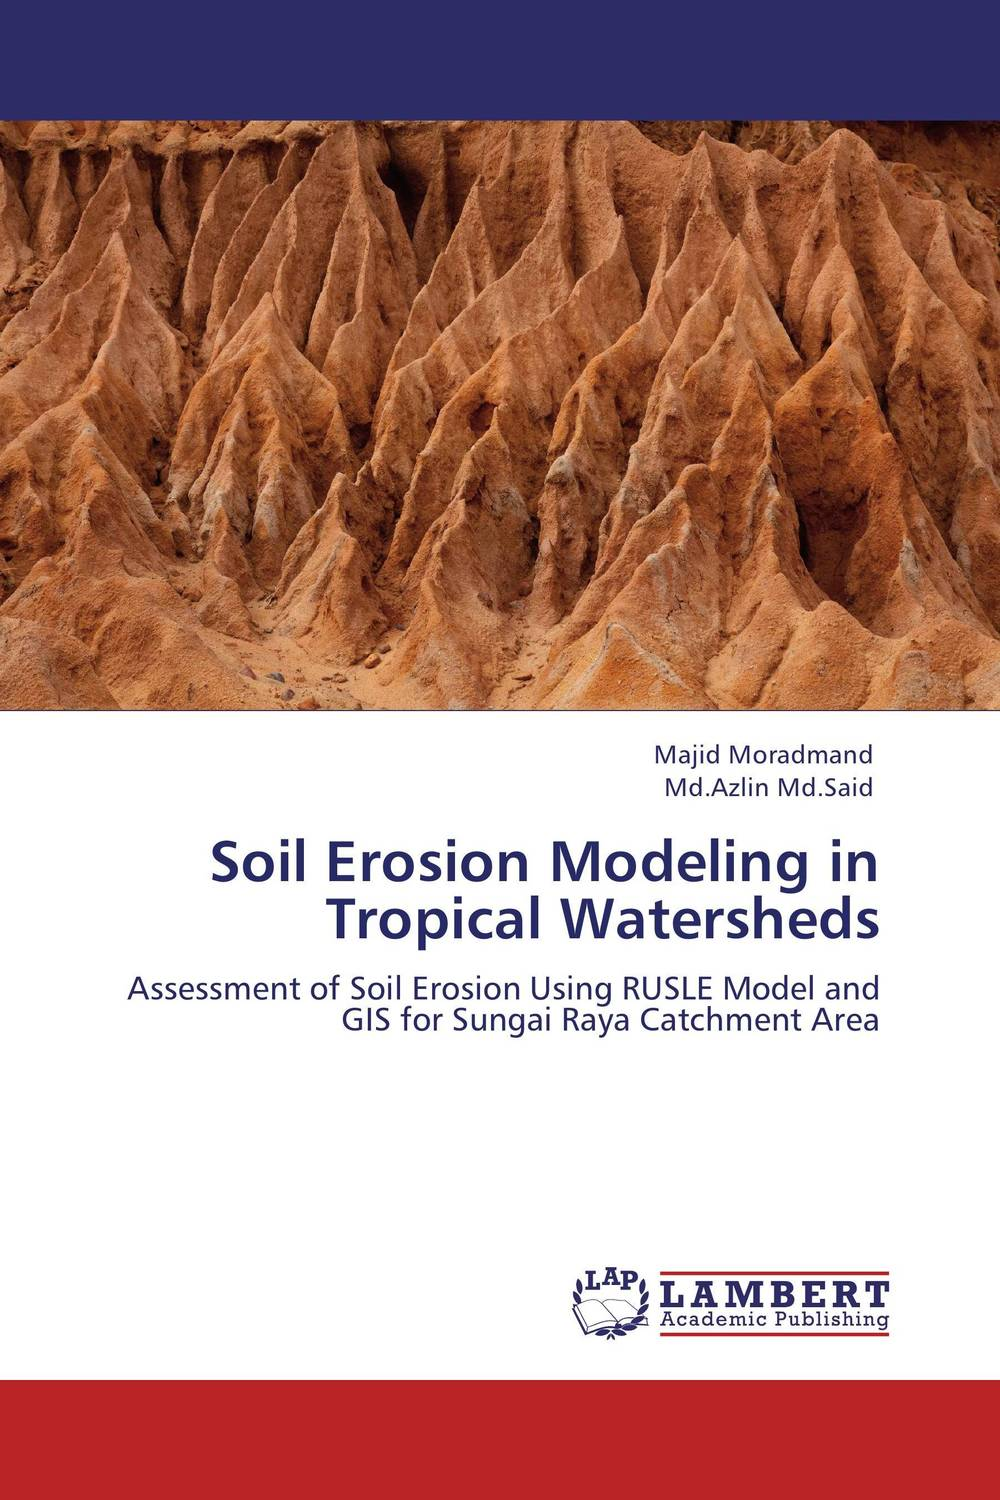 Soil Erosion Modeling in Tropical Watersheds